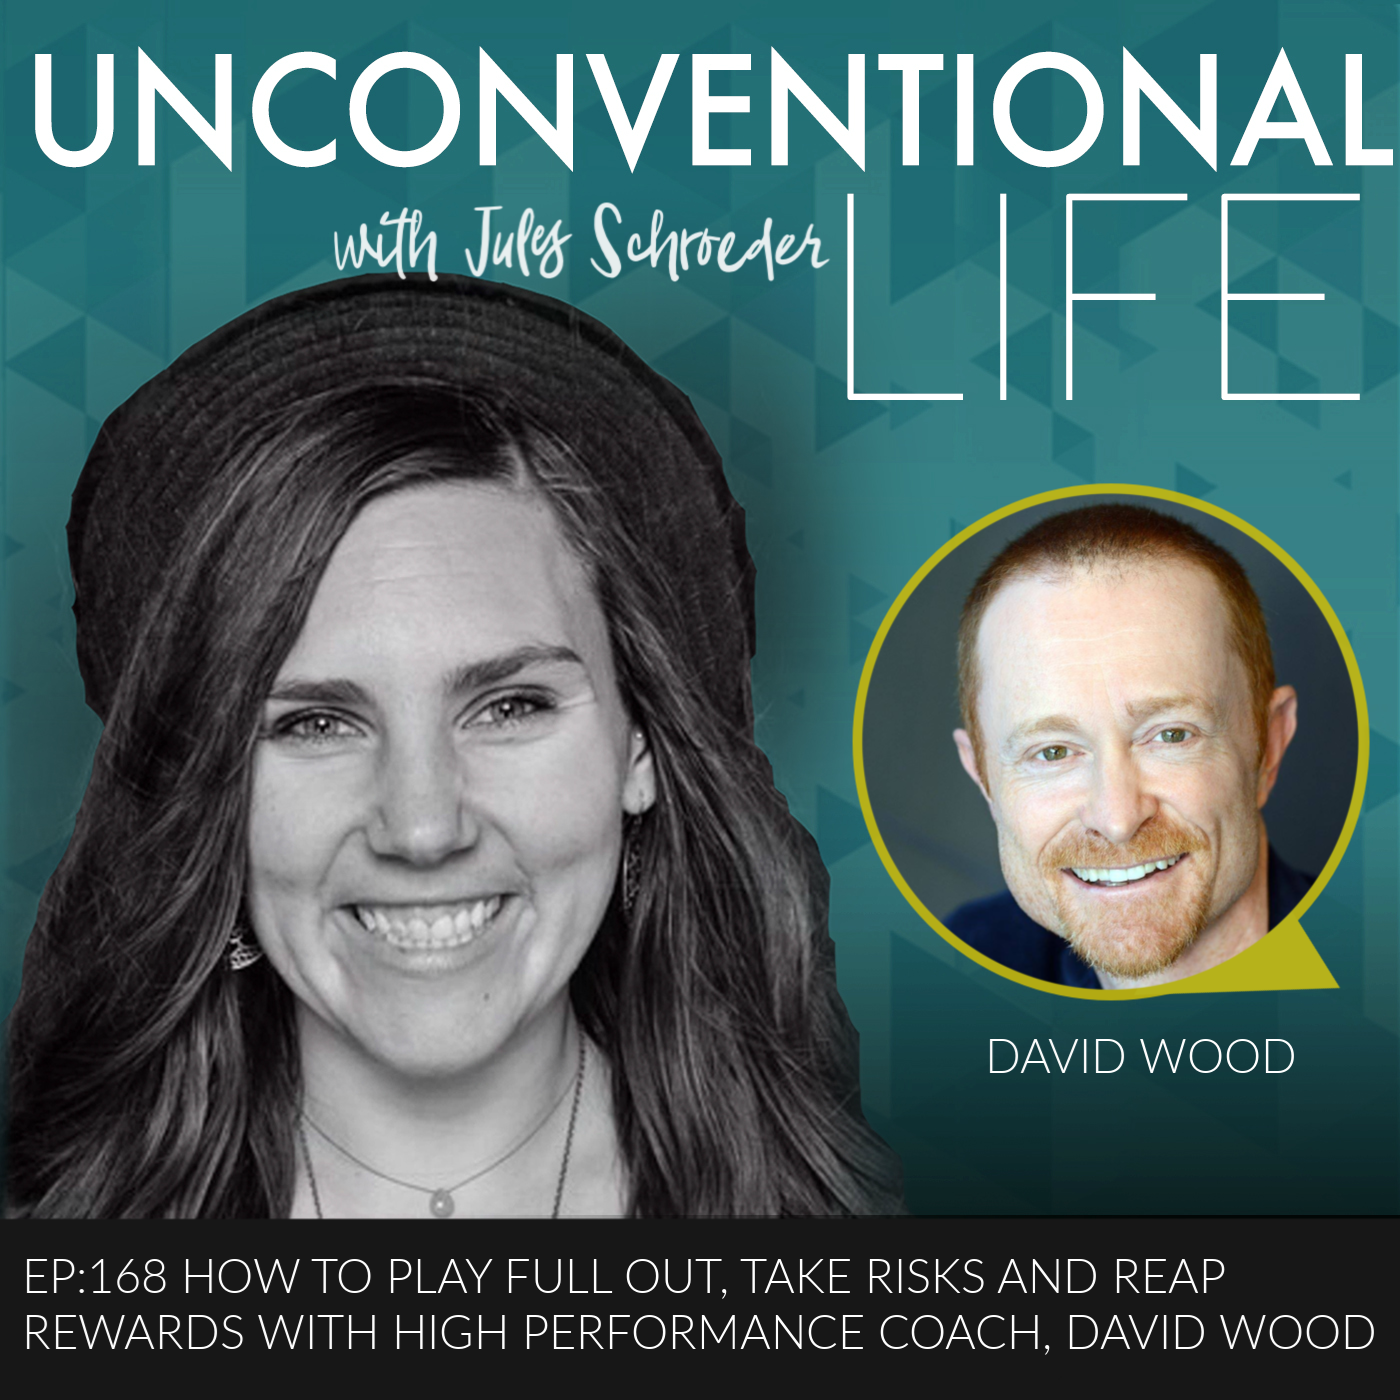 EP:168 How to Play Full Out, Take Risks and Reap Rewards with High Performance Coach, David Wood